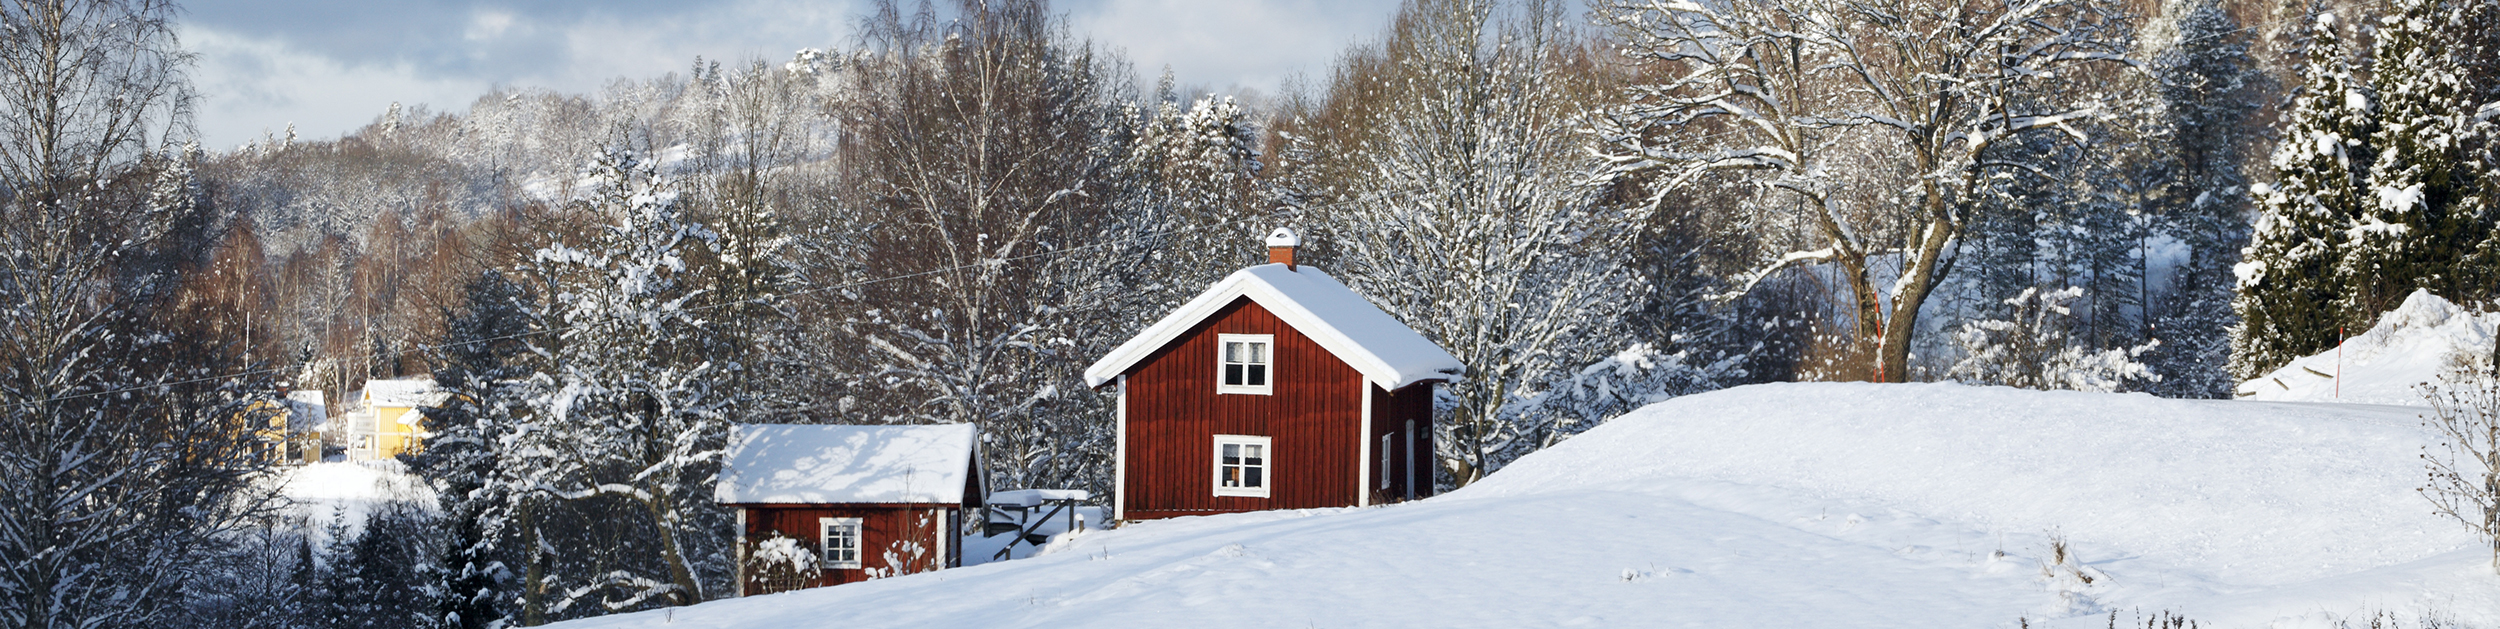 view of snow covered landscape with small red buildings and lots of trees